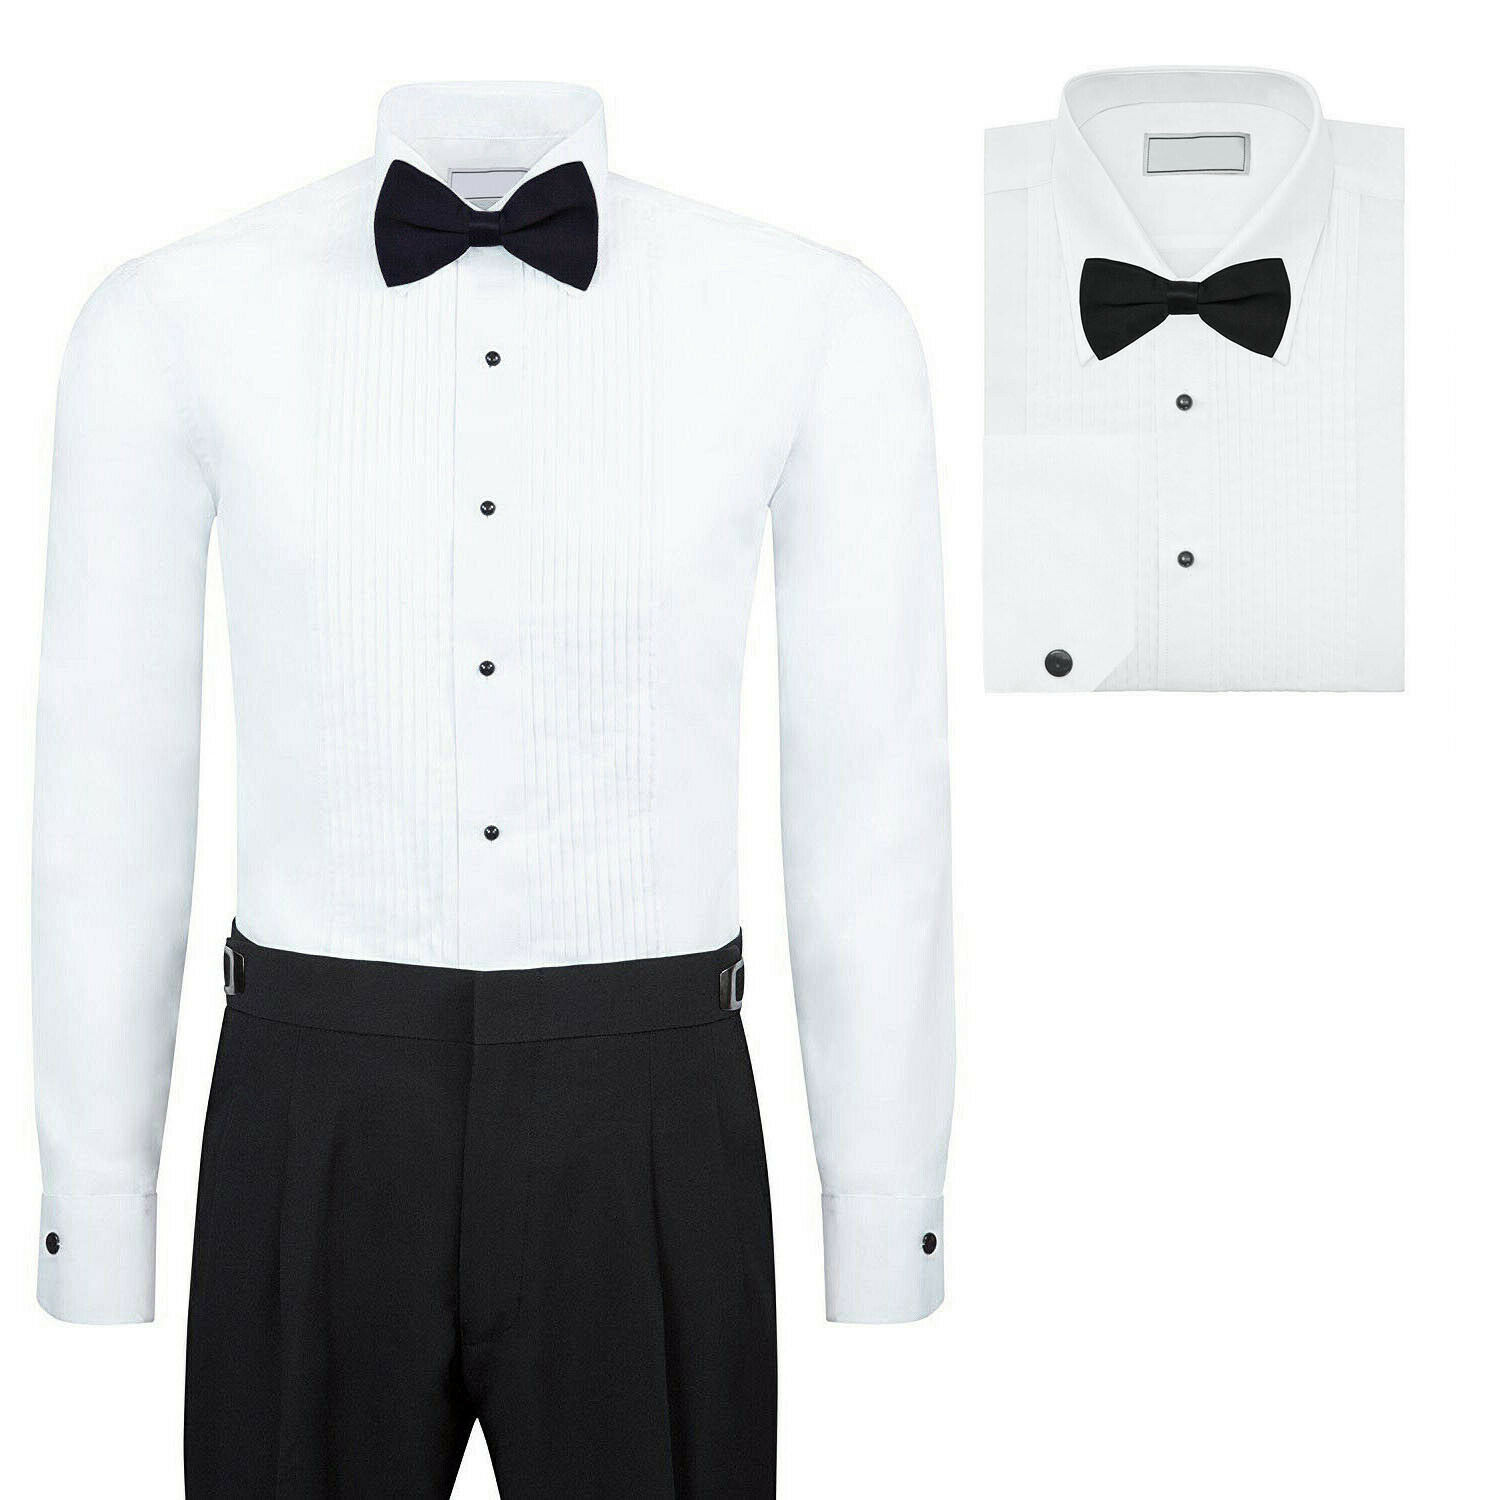 Men's Premium Formal Button Up Tuxedo Lay Down Collar Dress Shirt with Bow Tie